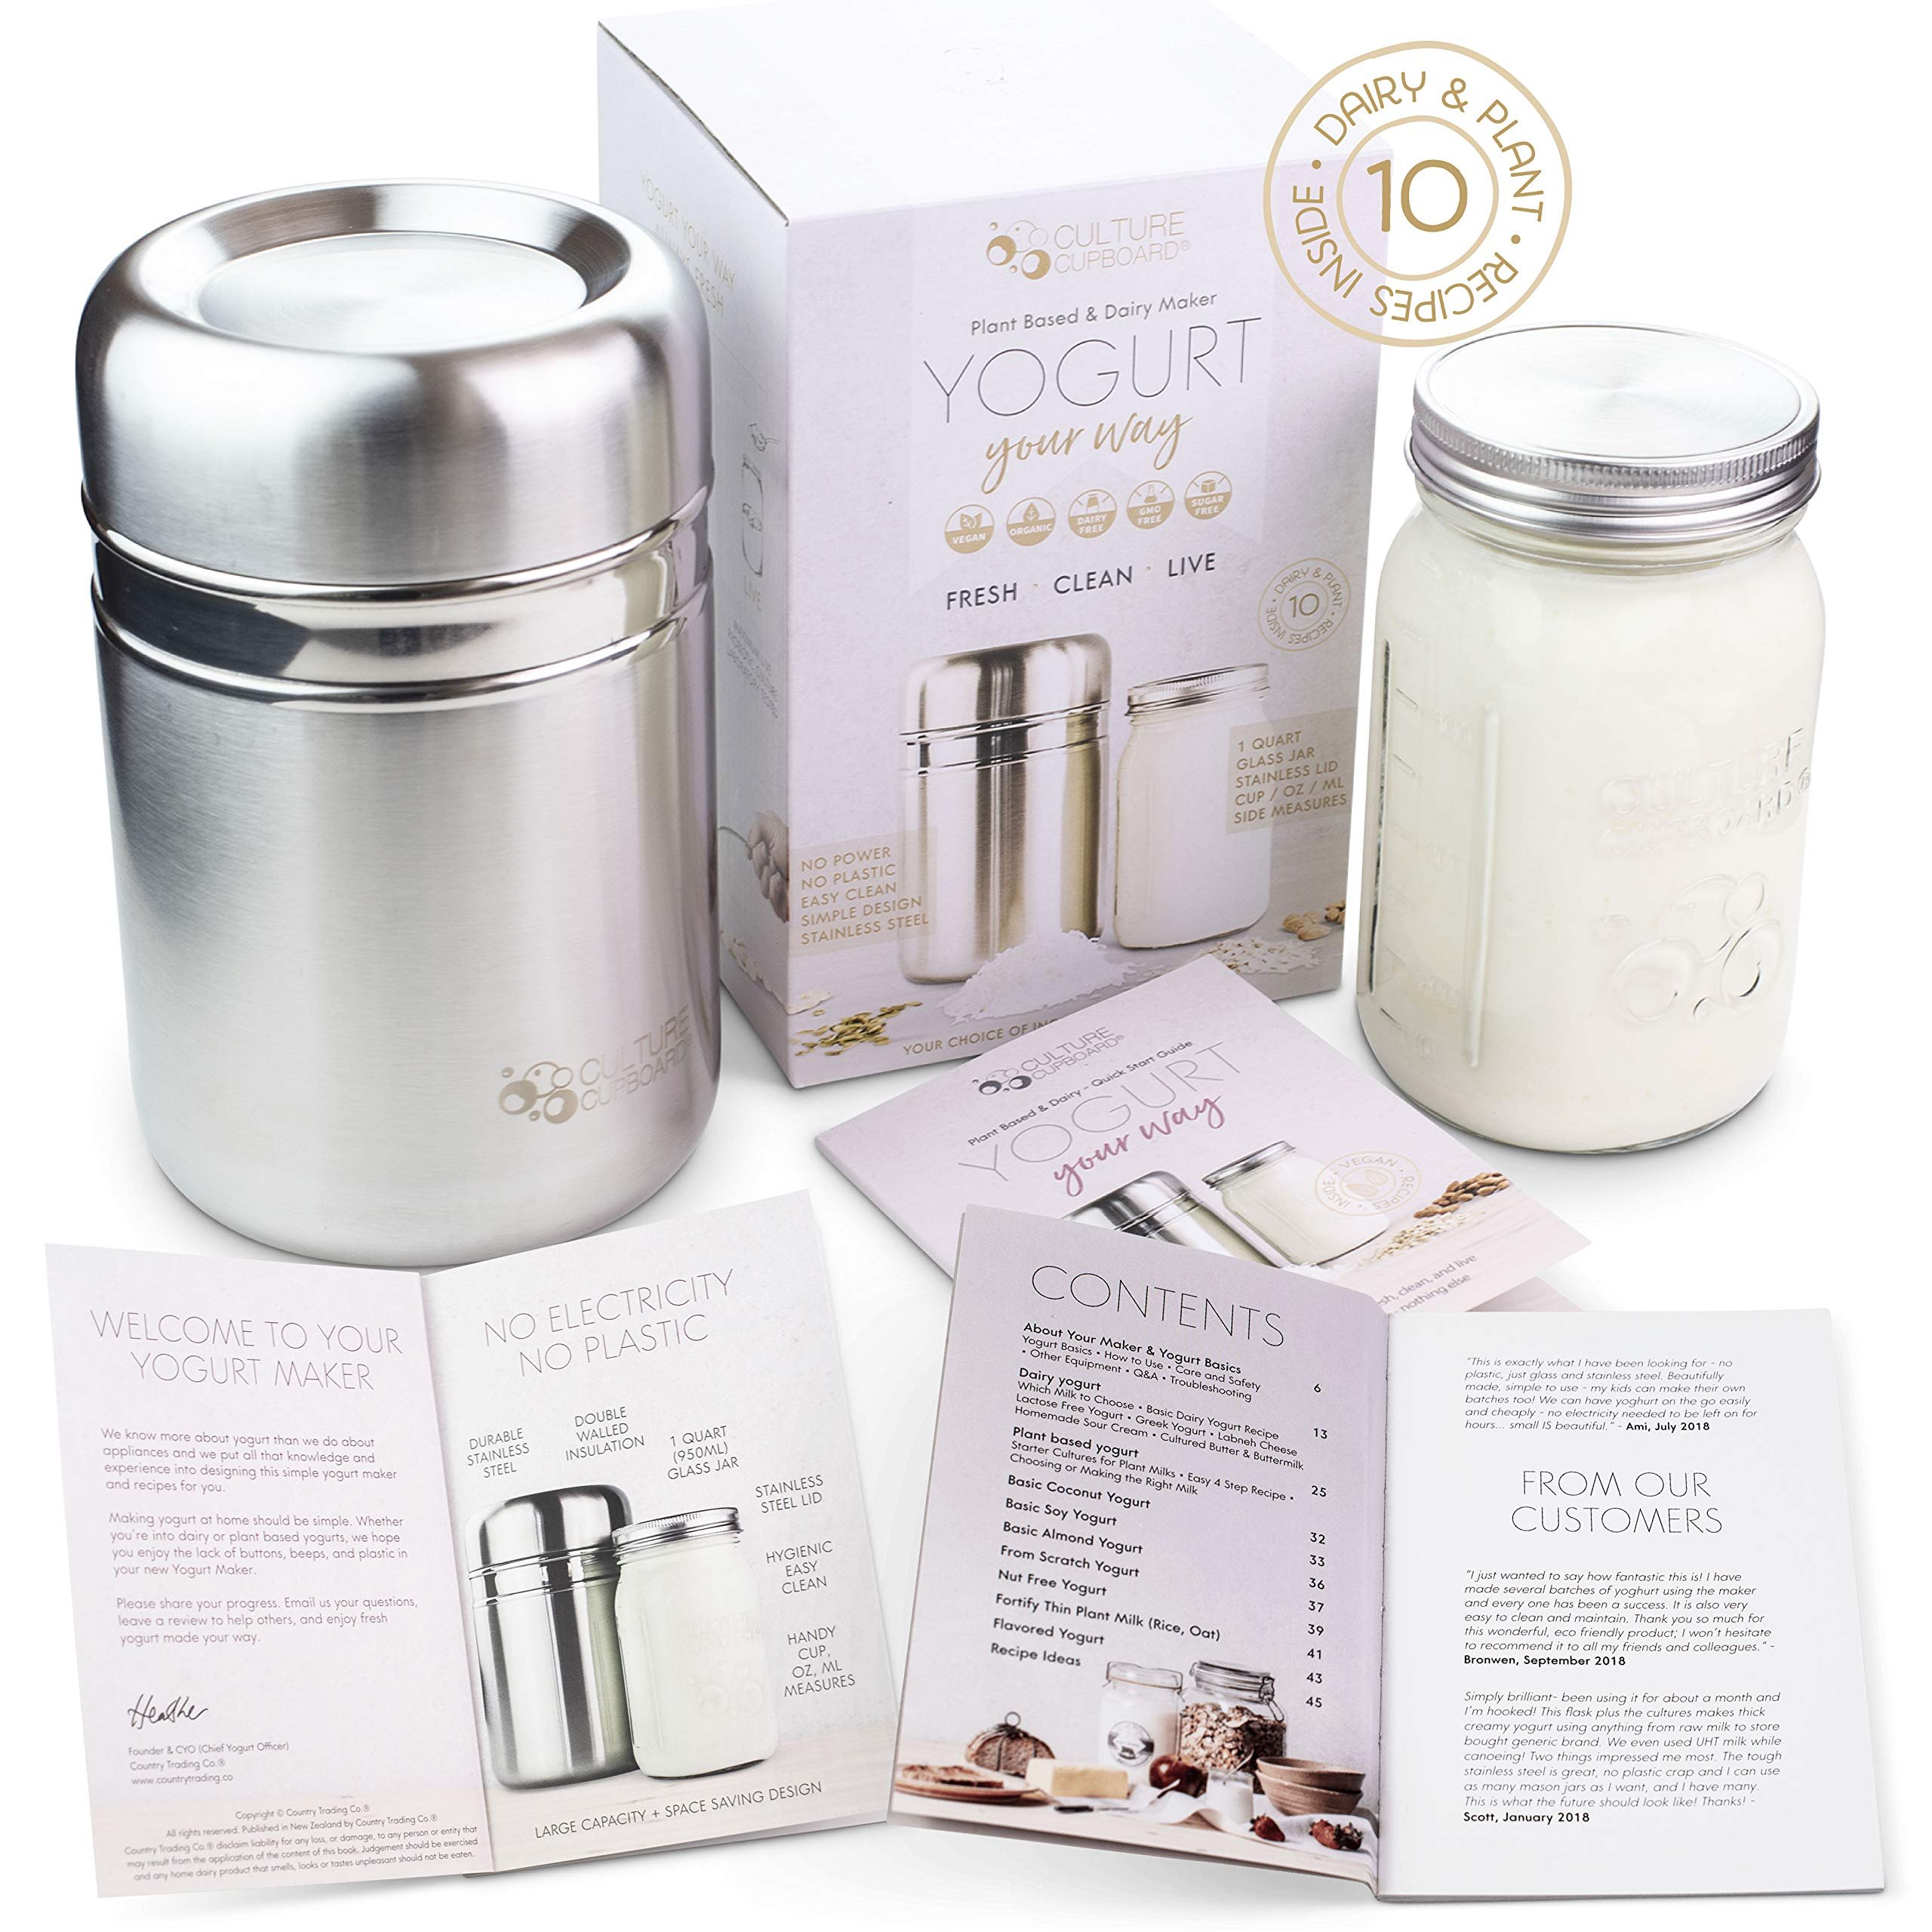 Stainless Steel Yogurt Maker with 1 Quart Glass Jar by Country Trading Co.